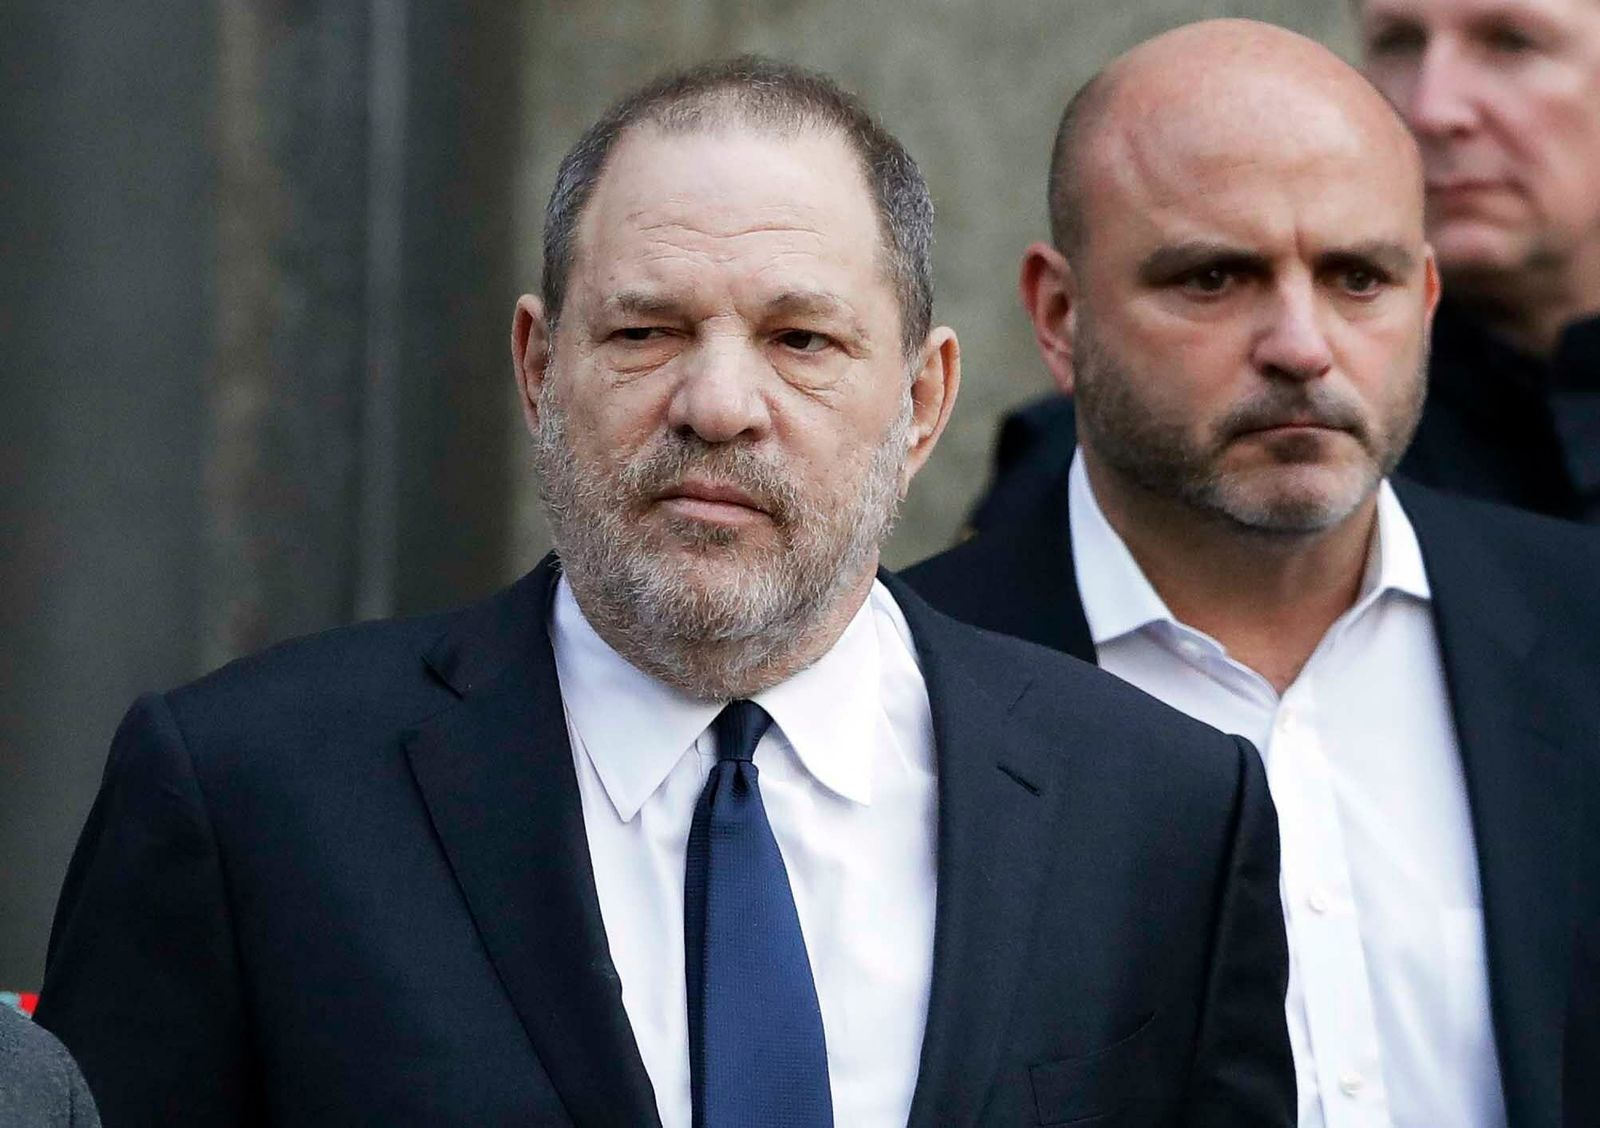 FILE - In this Thursday, Dec. 20, 2018, file photo, Harvey Weinstein, center, leaves New York Supreme Court in New York. Weinstein's lawyers say a New York judge should reject sex trafficking claims in a class-action civil lawsuit against the movie mogul. (AP Photo/Mark Lennihan, File)